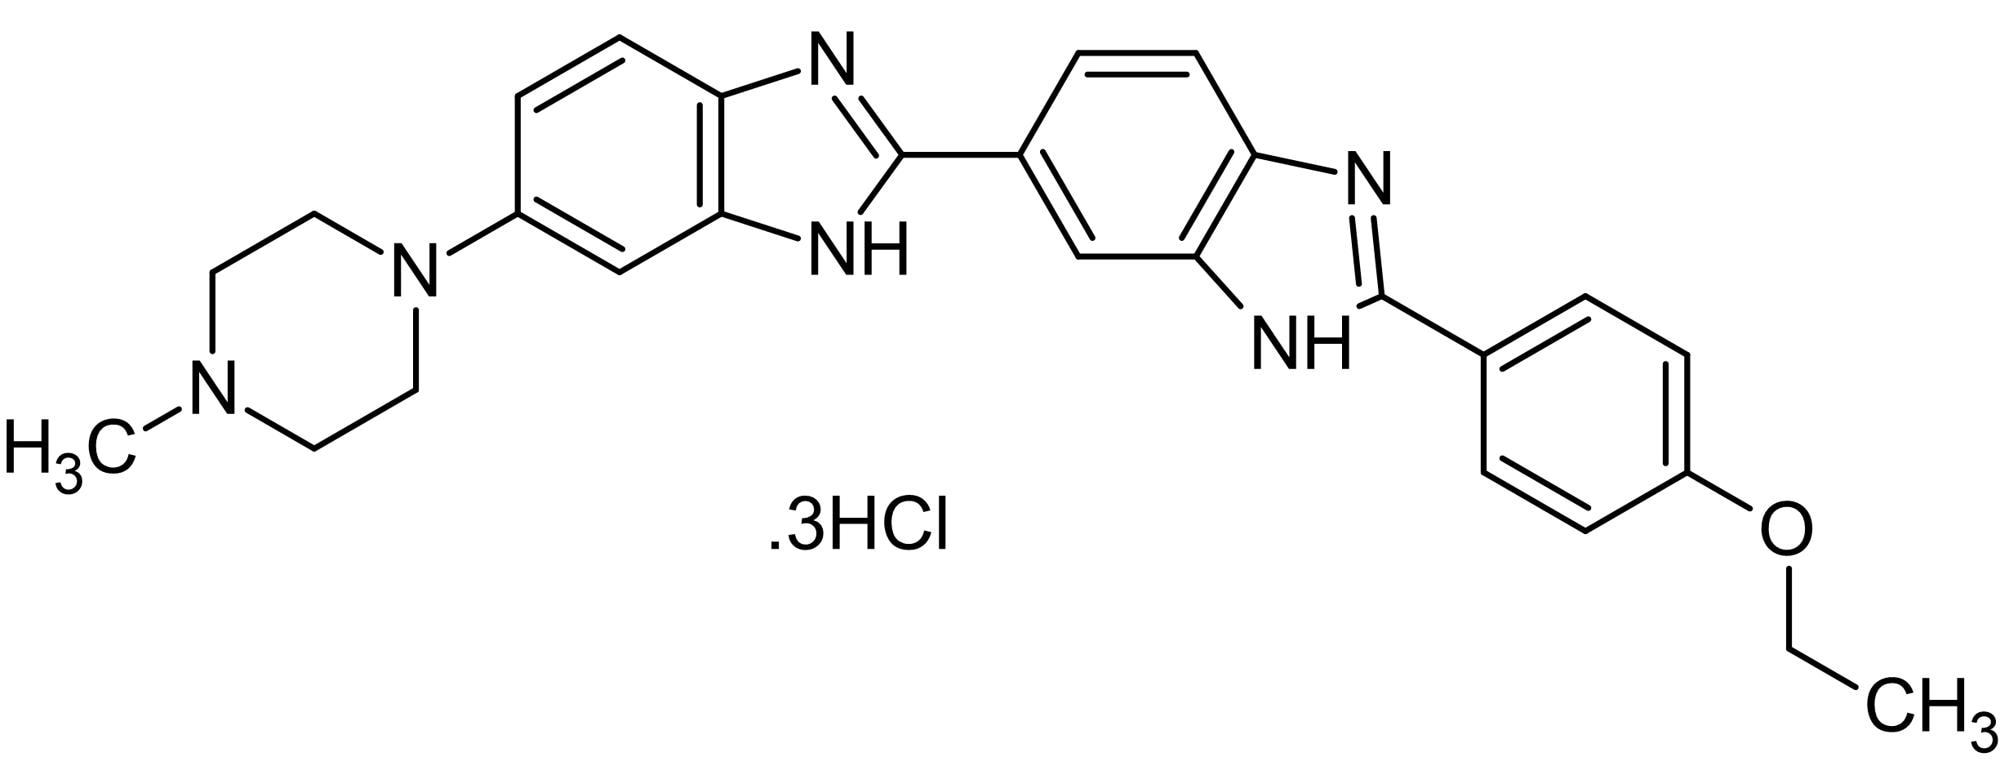 Chemical Structure - Bisbenzimide H 33342 (Hoechst 33342), adenine-thymine selective DNA fluorescent stain (ab145597)